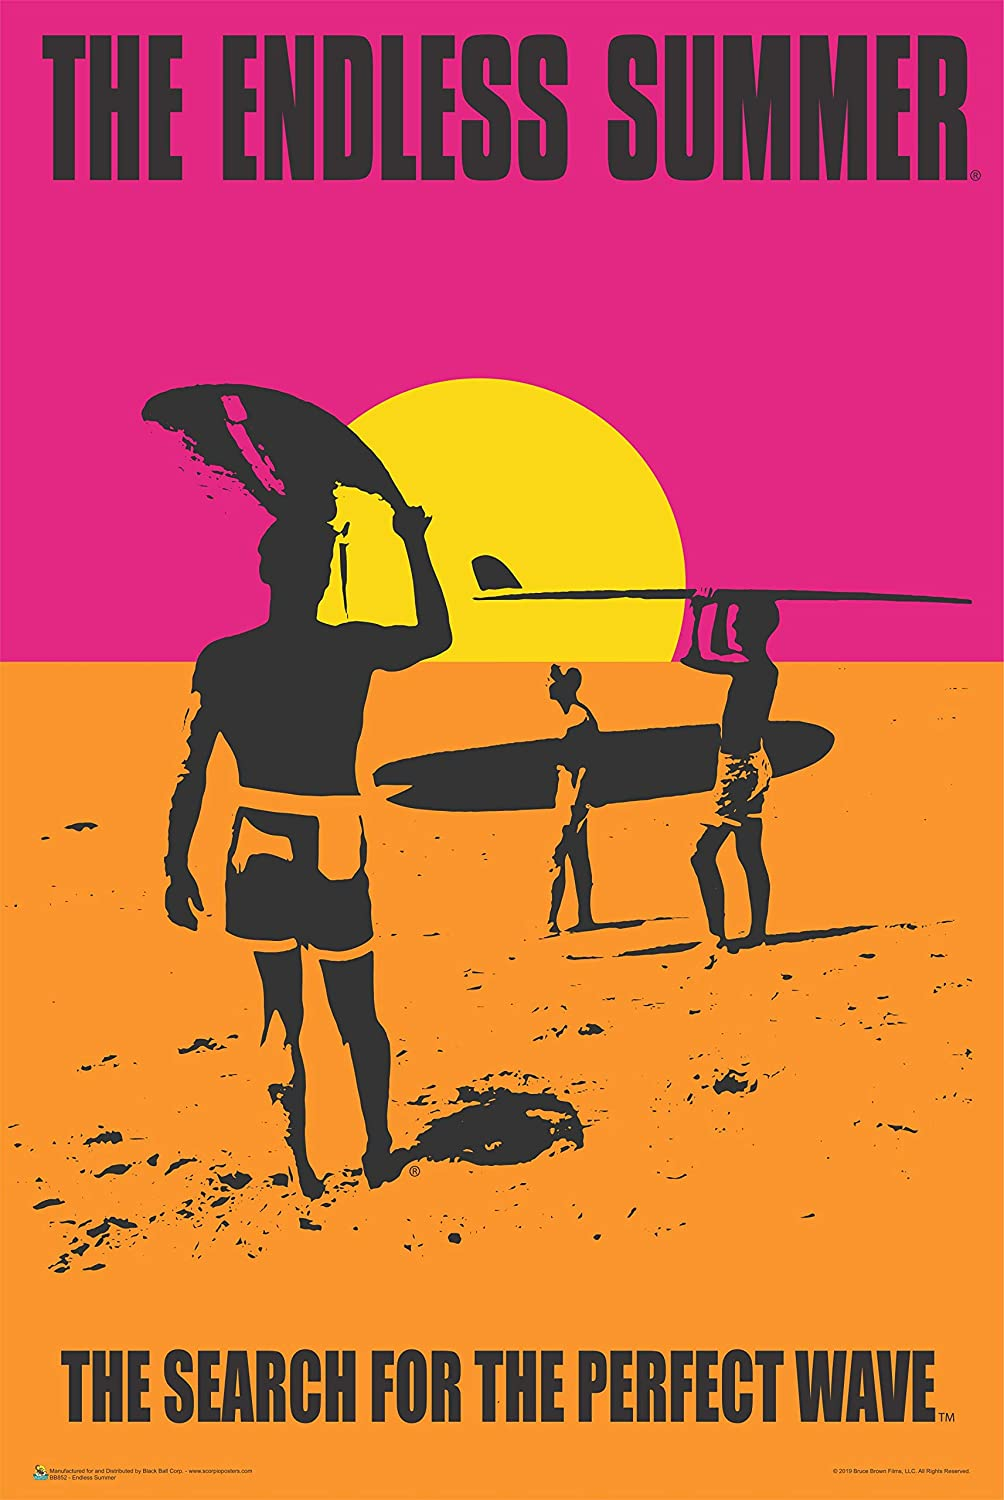 The Endless Summer Movie Poster 24x36 Paper Posters Prints